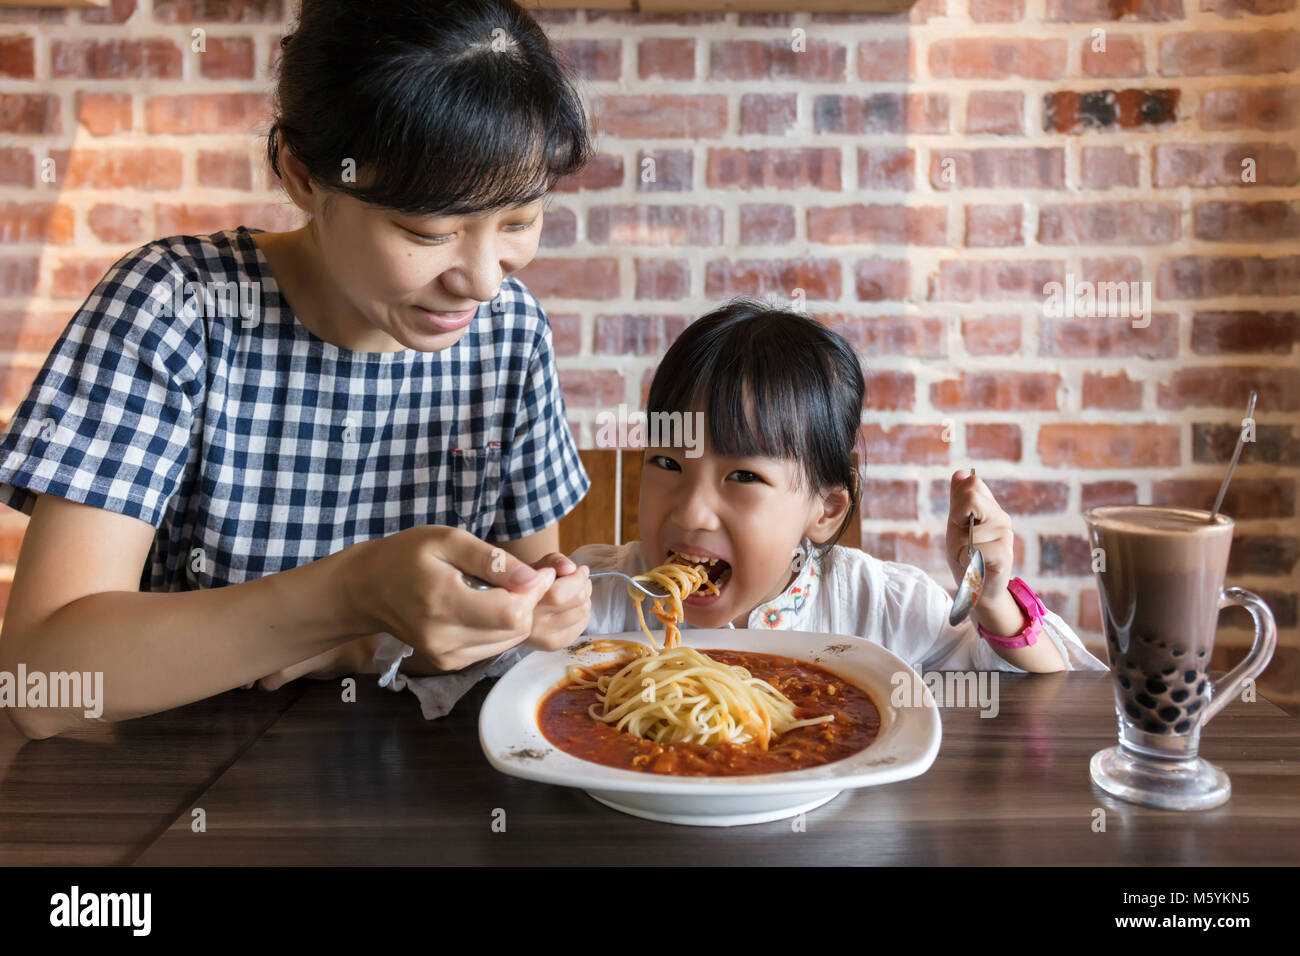 Chinois asiatique mother and daughter eating spaghetti bolognese dans le restaurant Photo Stock